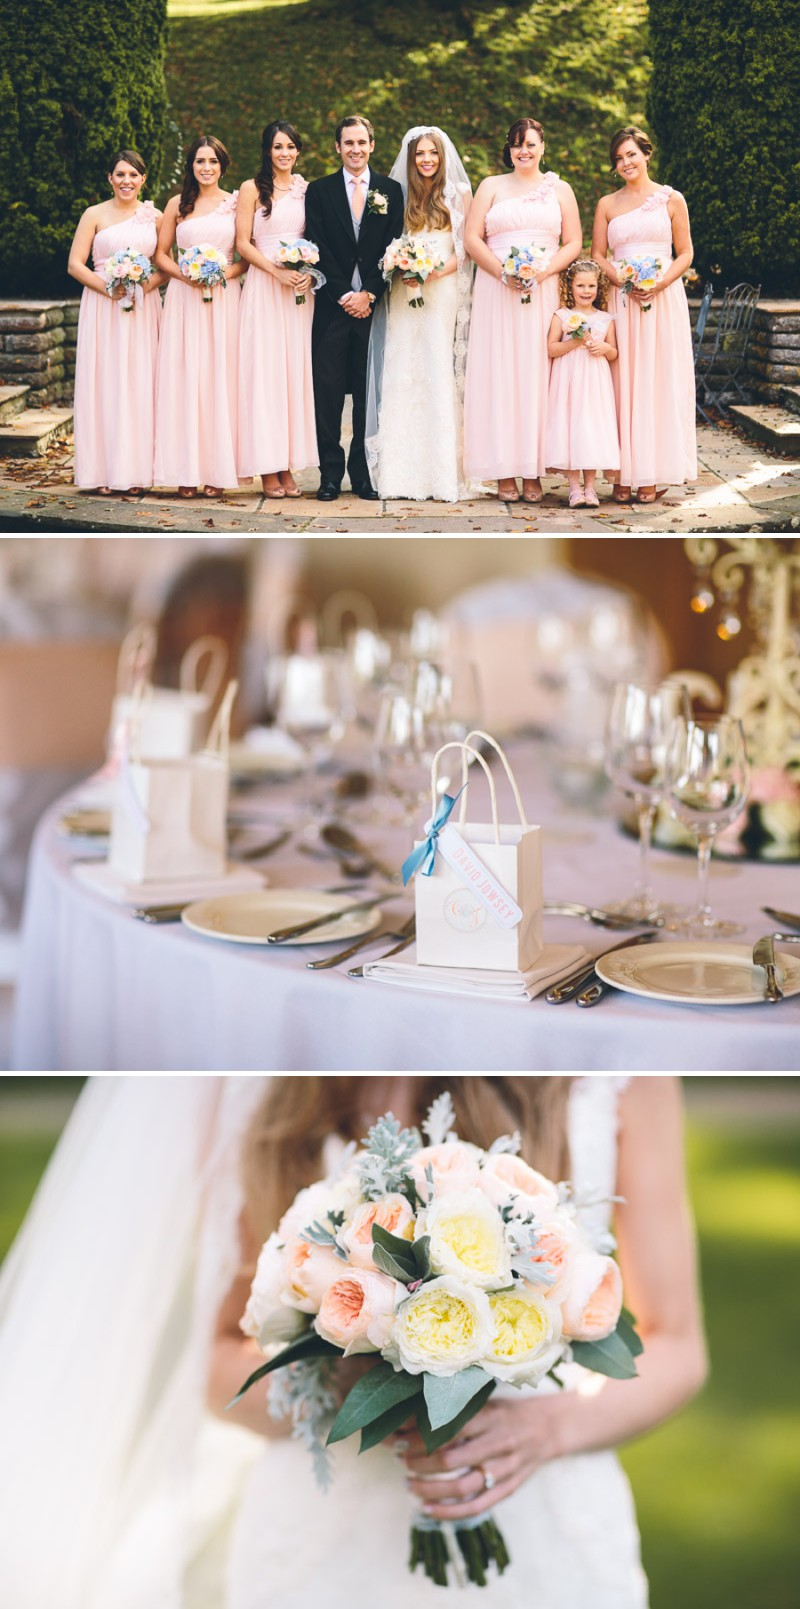 A Elegant And Classic English Wedding At Coombe Lodge With A Pronovias 'Balta' Dress With A Peach And Duck Egg Blue Colour Scheme Photographed By Albert Palmer._0007